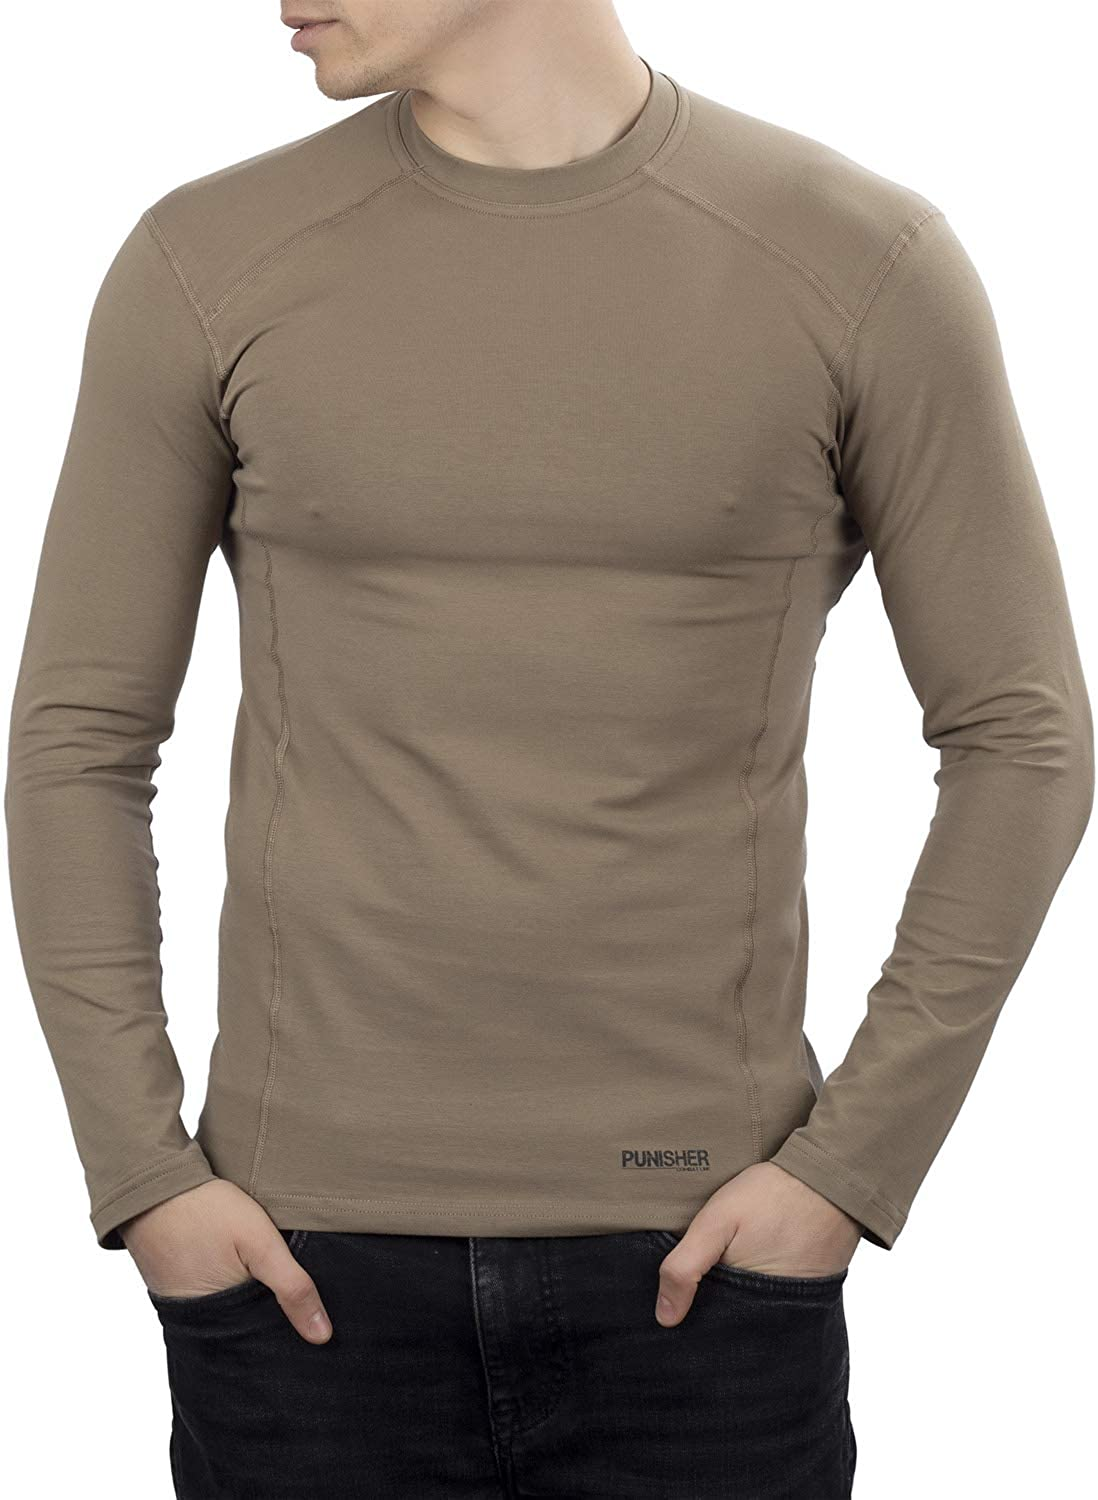 281Z Mens Military Stretch Cotton Long Sleeve T-Shirt - Tactical Hiking Outdoor Undershirt - Punisher Combat Line (Tan)